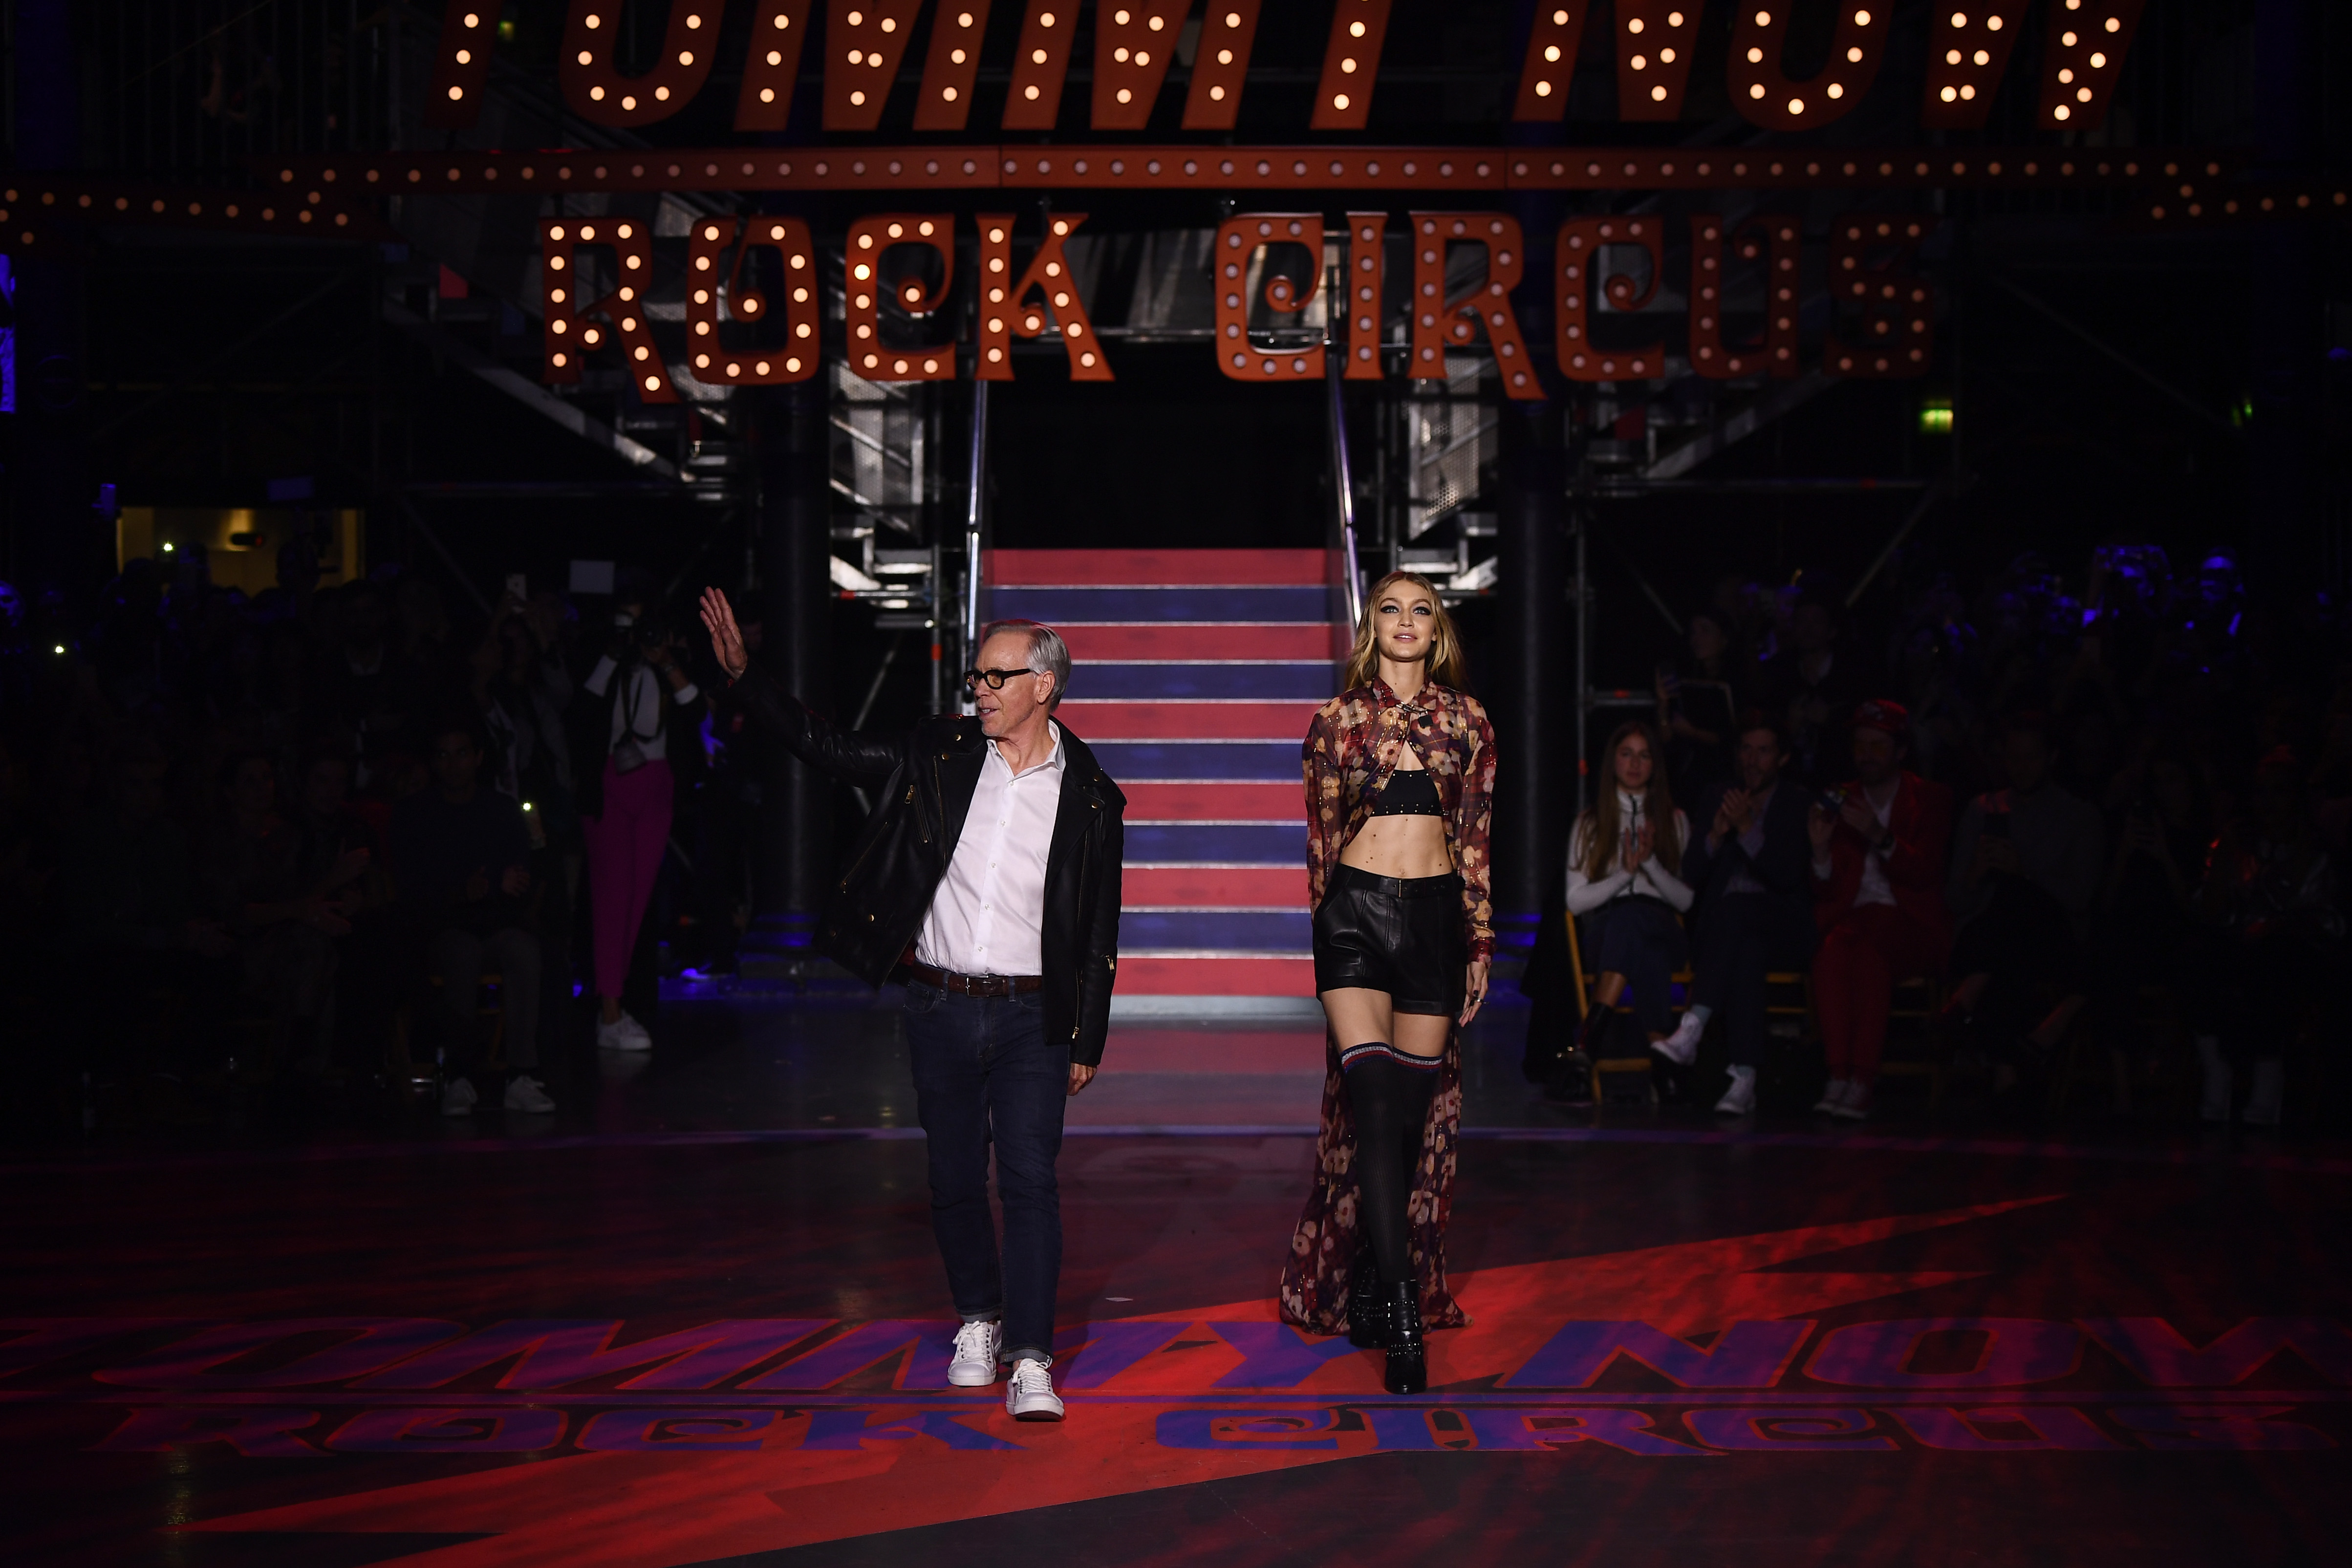 LONDON, ENGLAND - SEPTEMBER 19:  Fashion designer Tommy Hilfiger and model Gigi Hadid are seen on the runway at the Tommy Hilfiger TOMMYNOW Fall 2017 Show during London Fashion Week September 2017 at the Roundhouse on September 19, 2017 in London, England.  (Photo by Ian Gavan/Getty Images for Tommy Hilfiger)